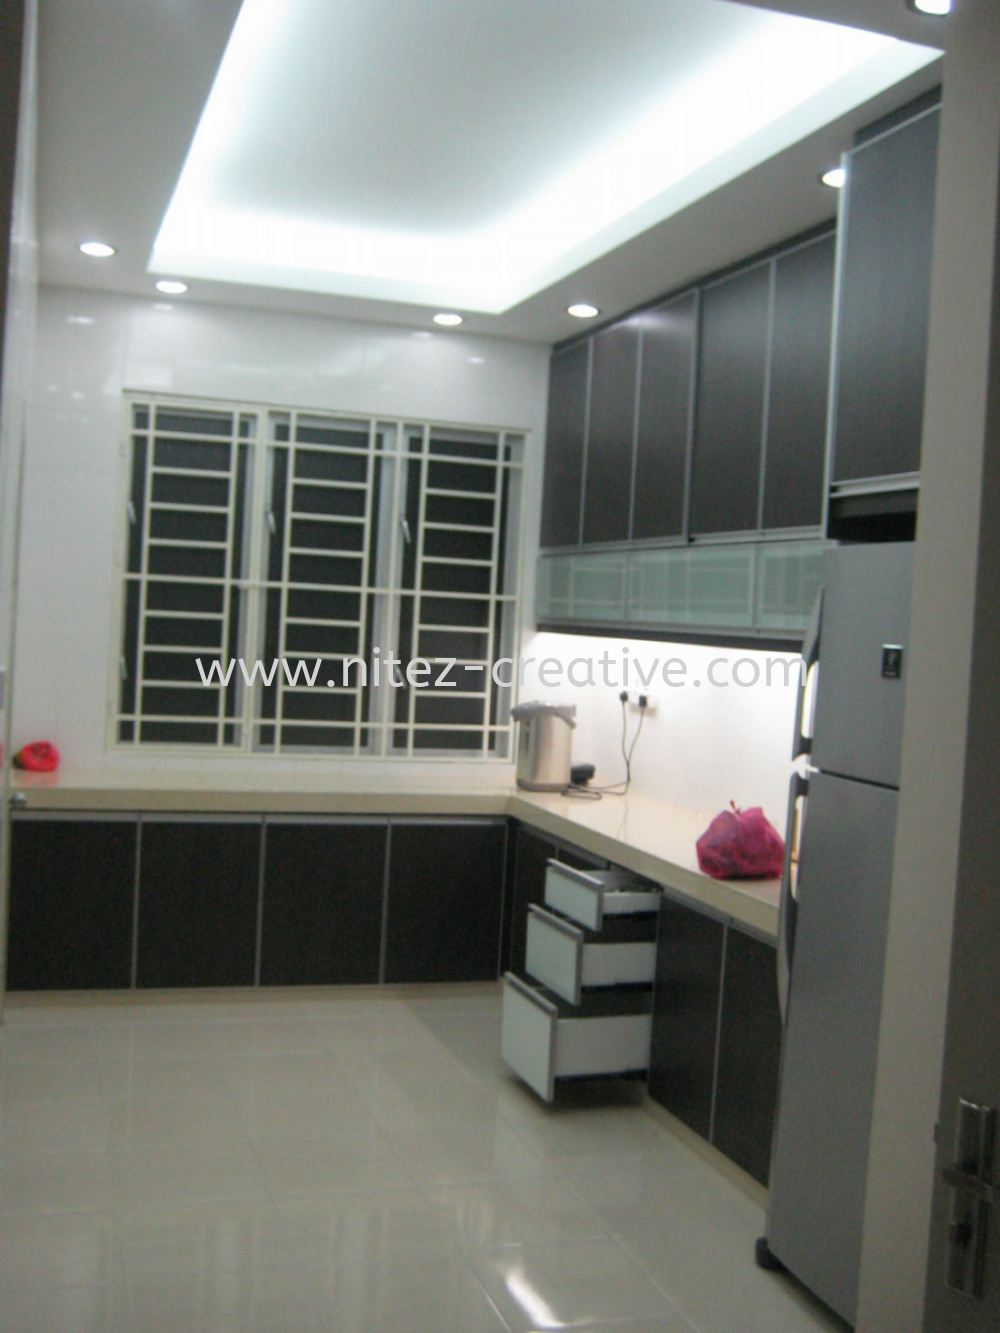 Wet kitchen bukit indah kitchen design jb johor bahru for I kitchen bukit indah